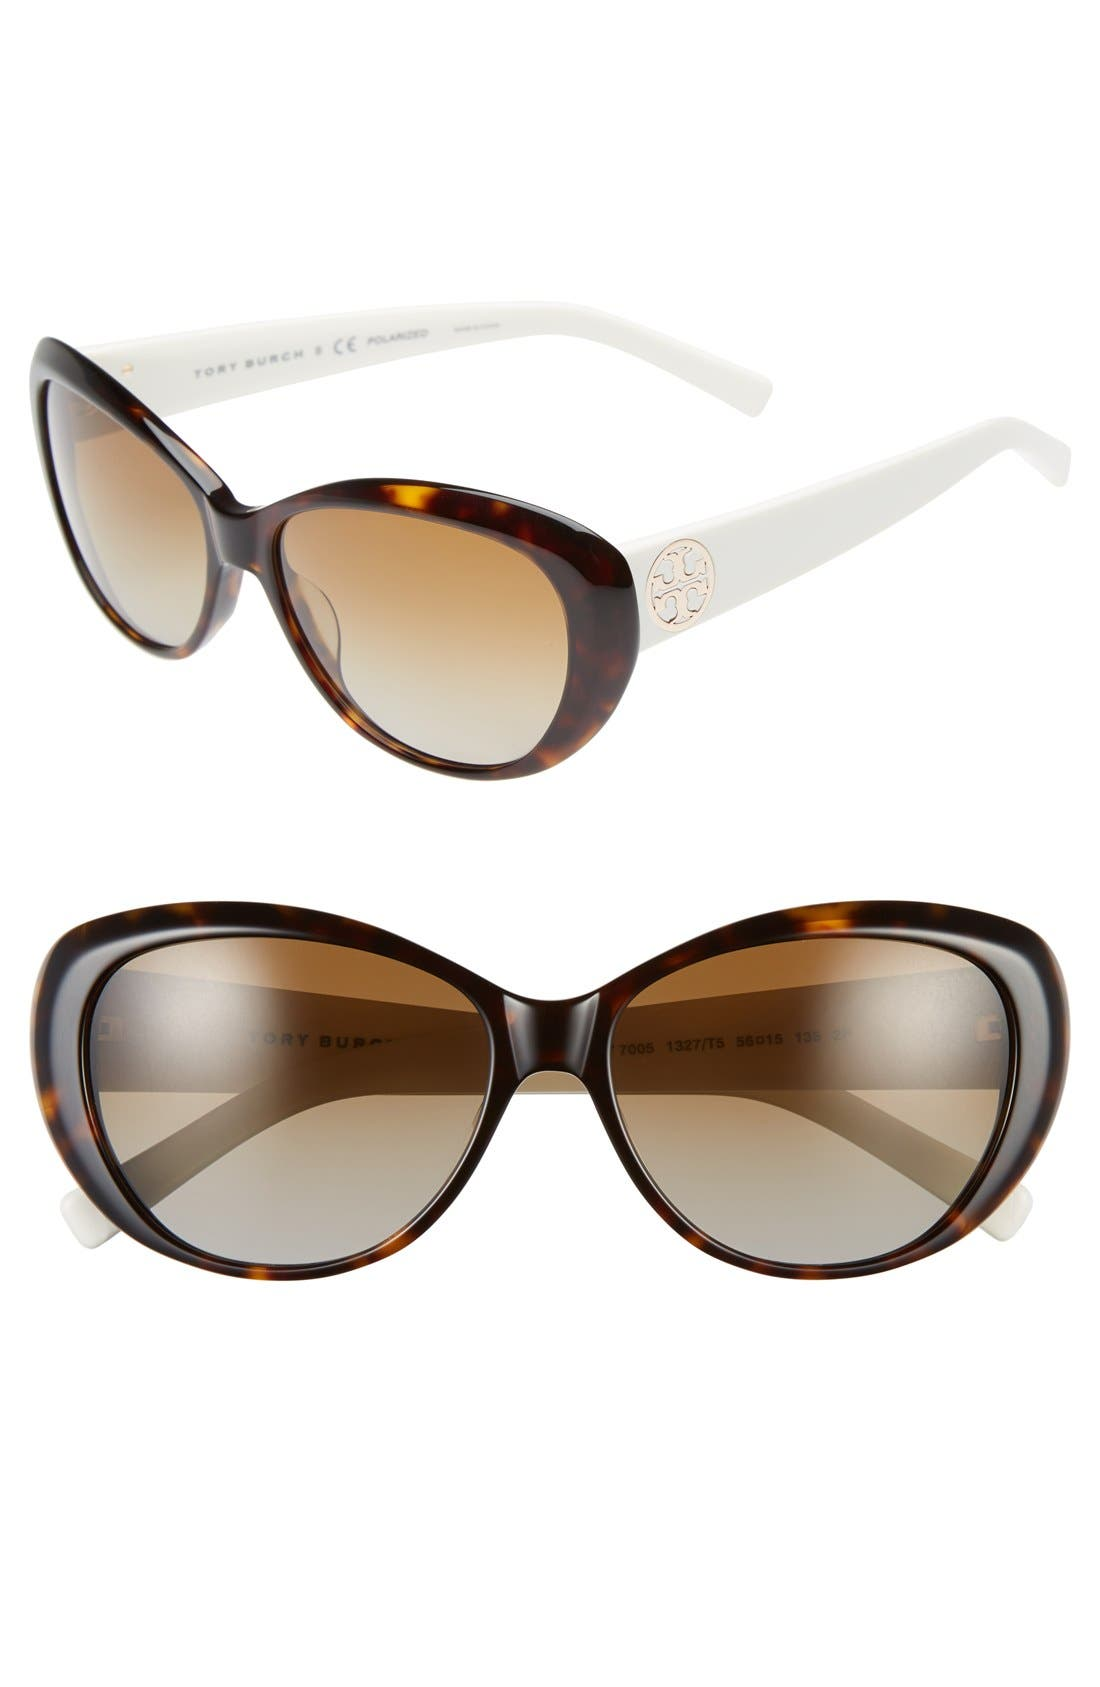 Main Image - Tory Burch 56mm Polarized Cat Eye Sunglasses